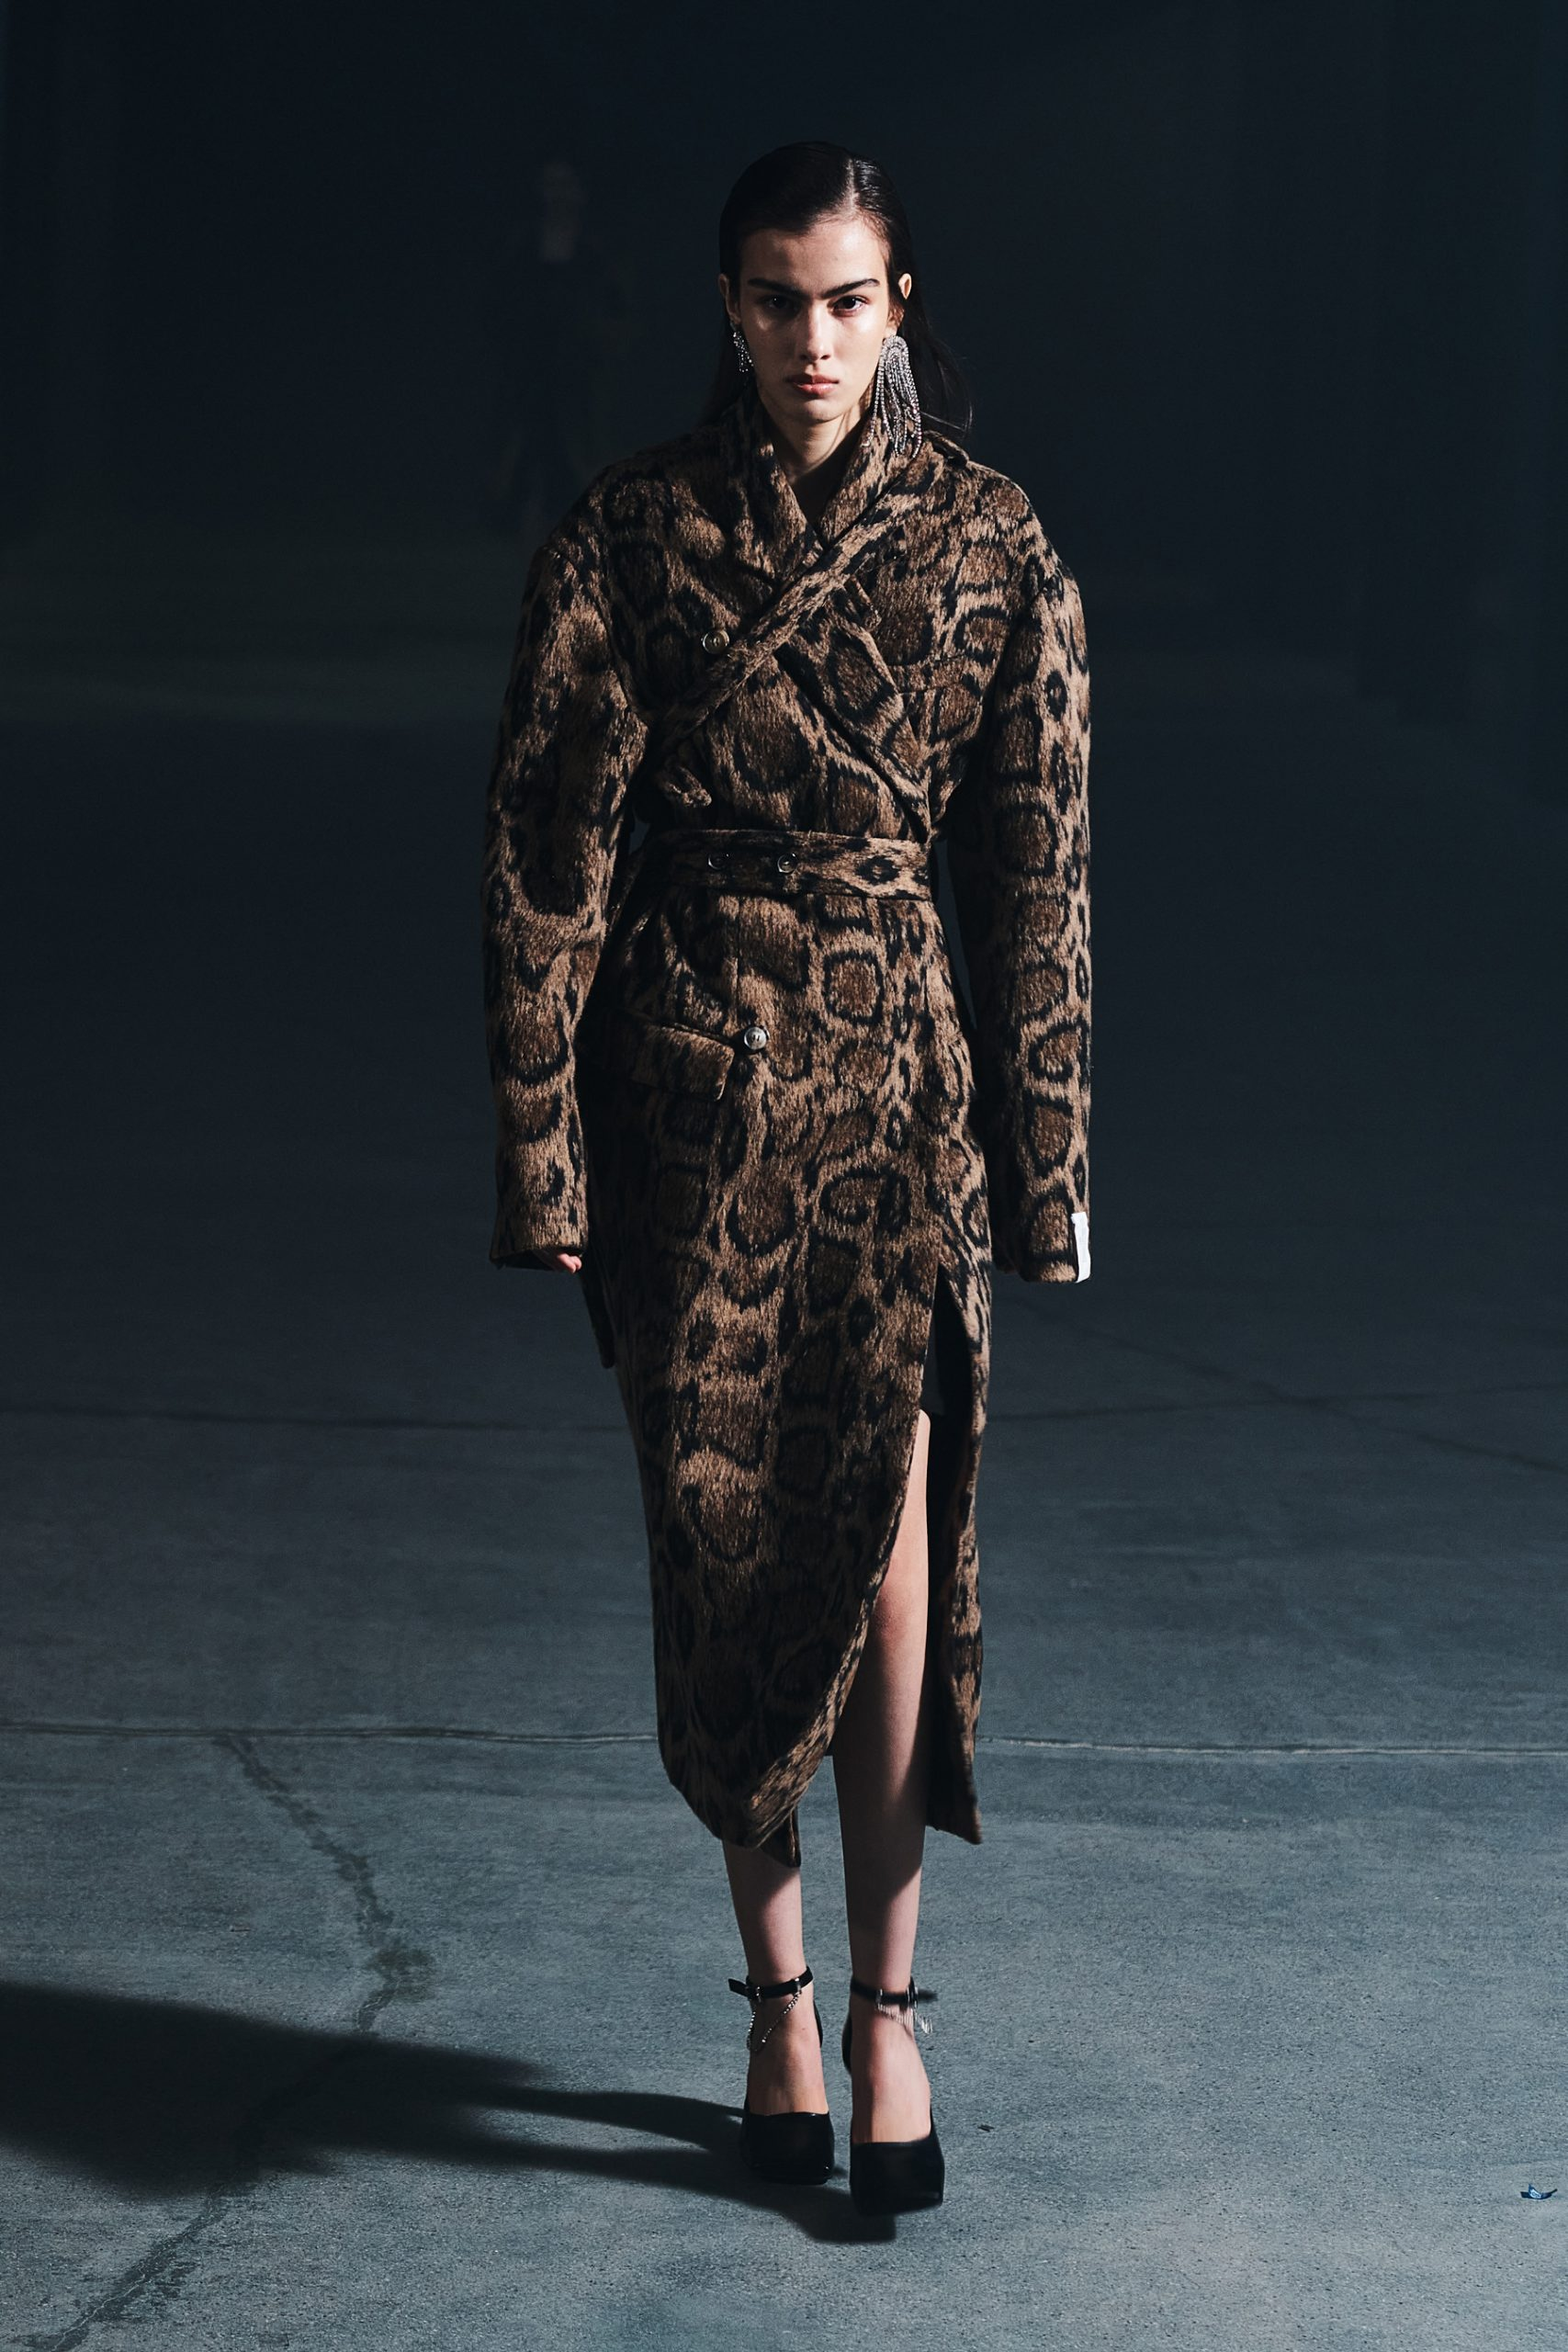 Leopard and Tiger Print Fall 2021 Fashion Trend